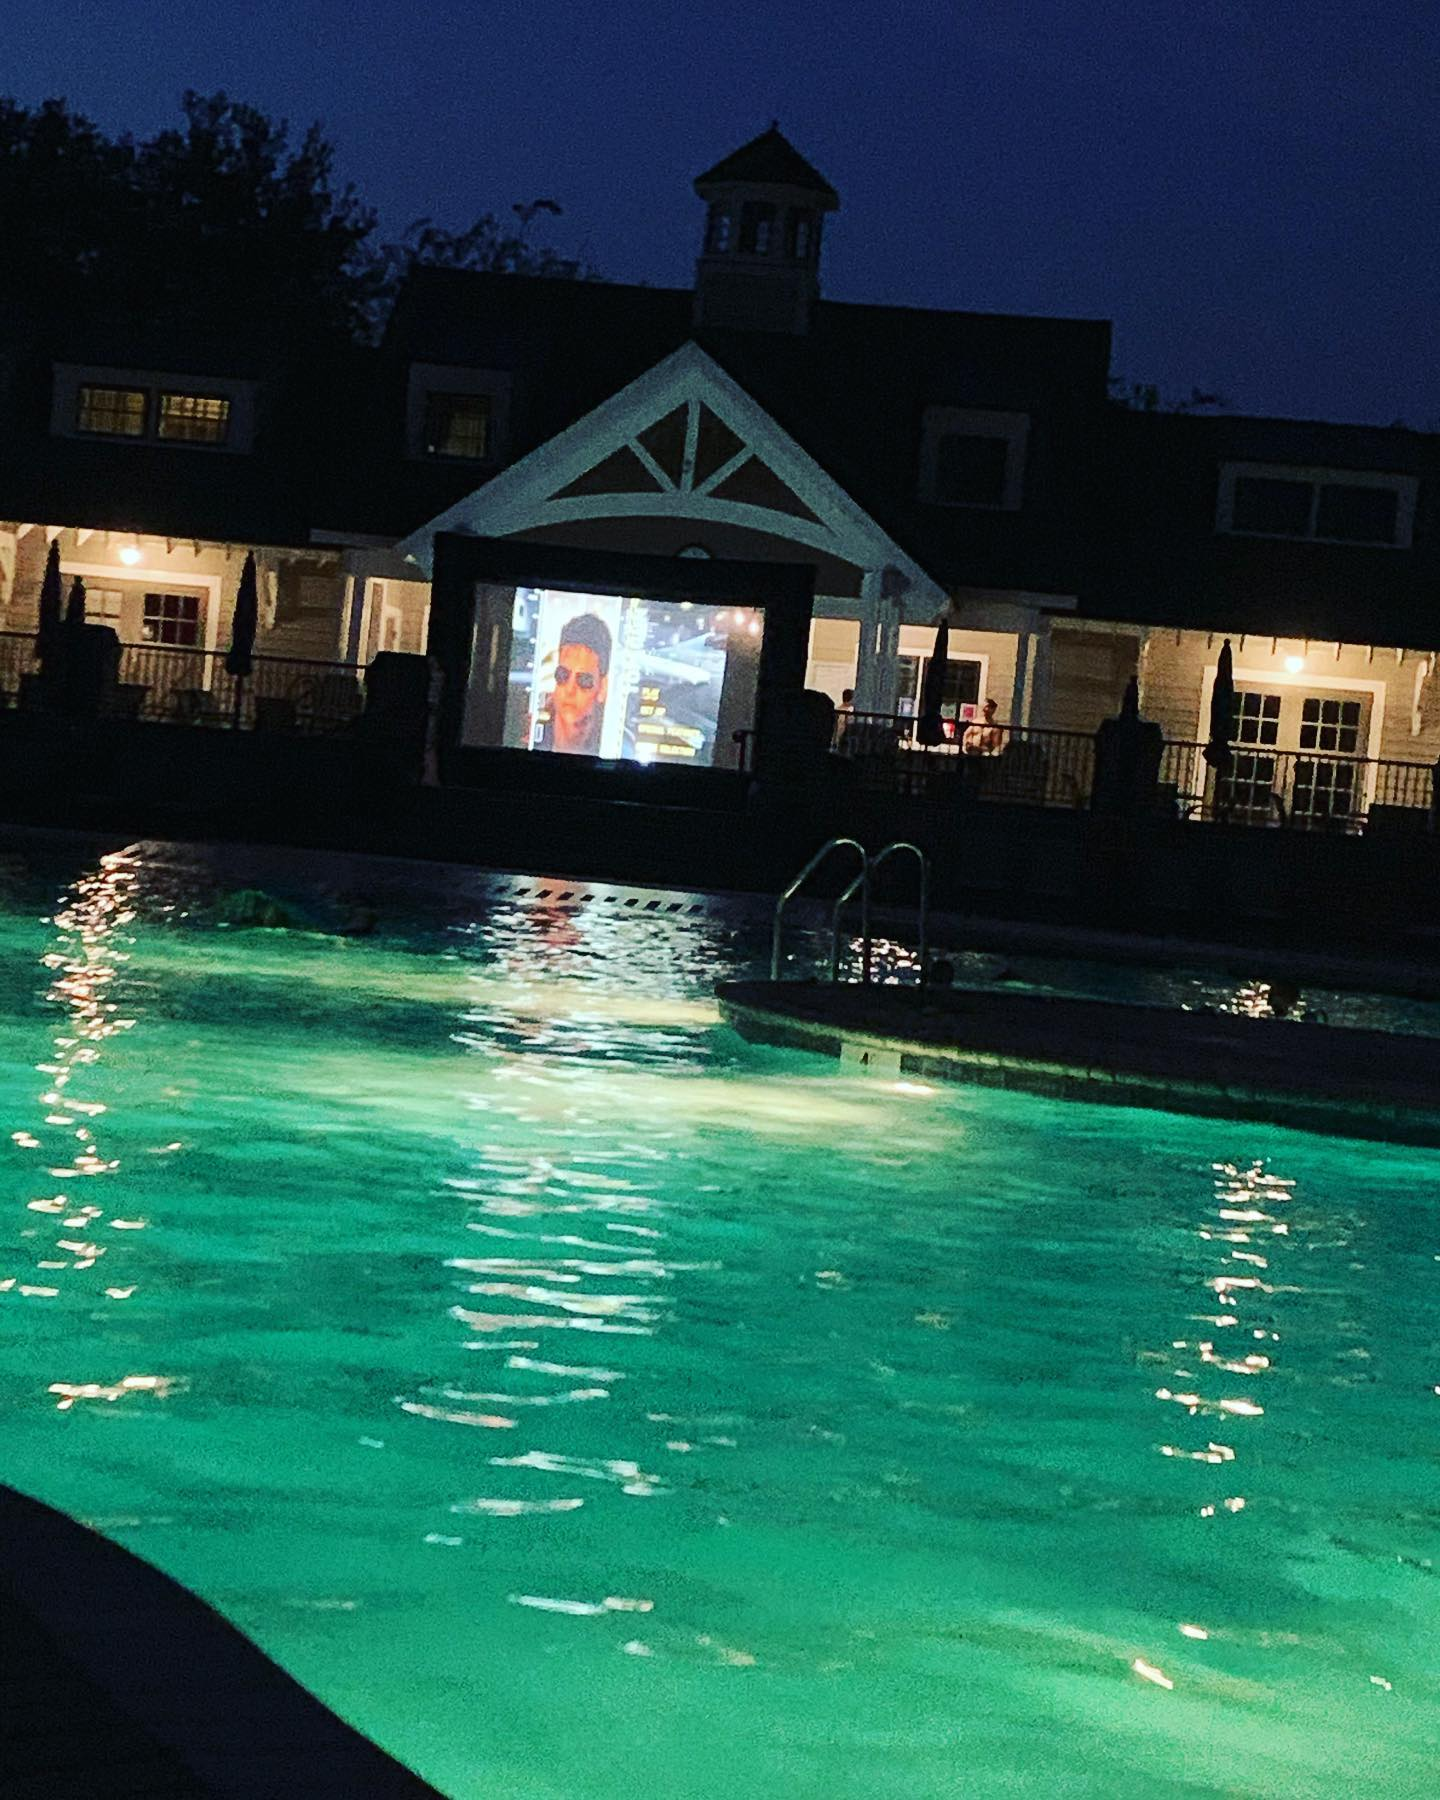 Family dive in Night at the Club!  Friends, Drinks & Top Gun.  Savannah Quarters is the place to be. Want to learn more about living in @sav